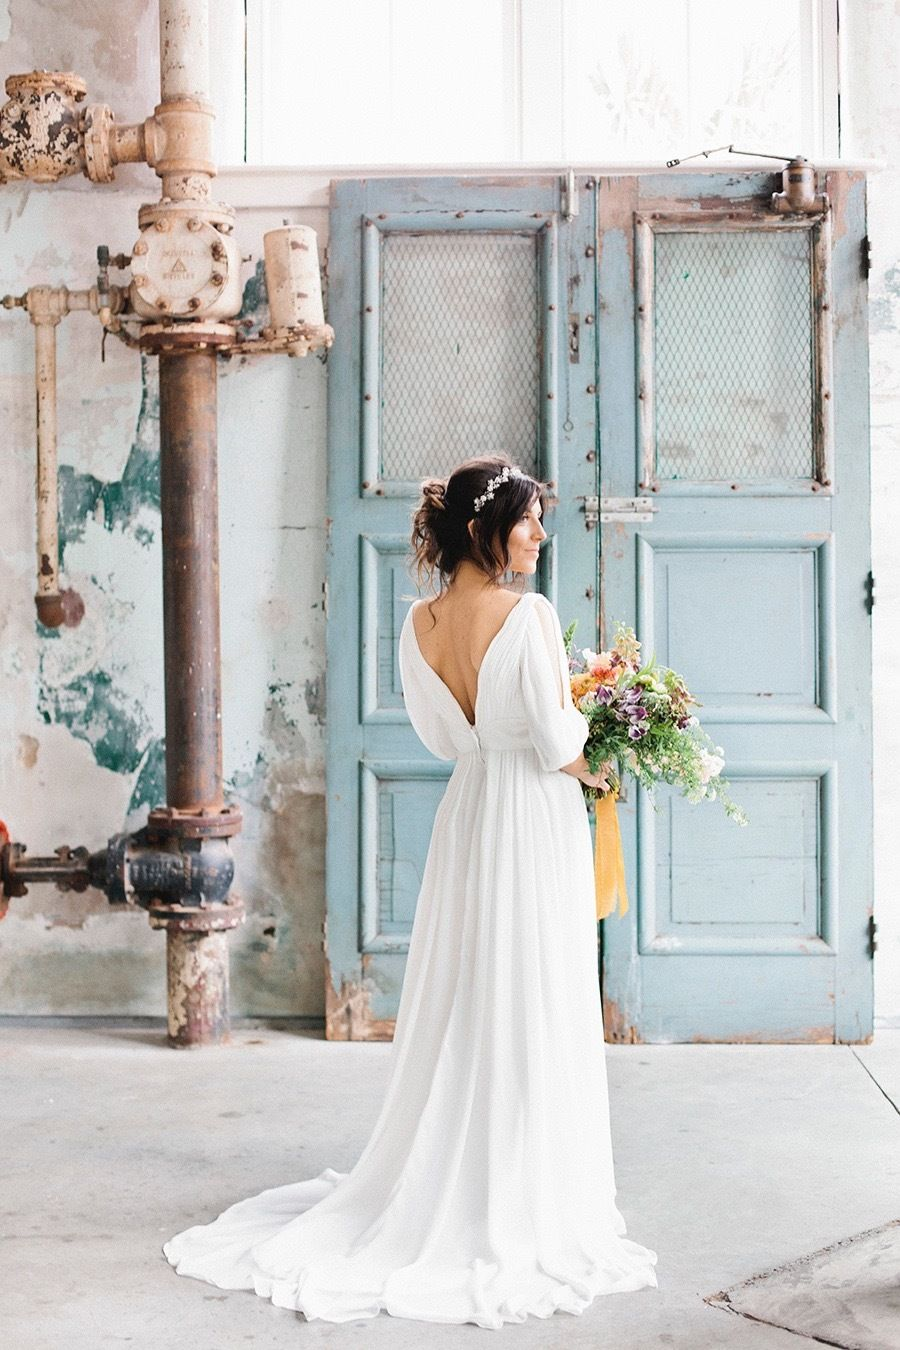 Sleek, Modern Wedding Dresses that are Redefining Classic | Vestido ...